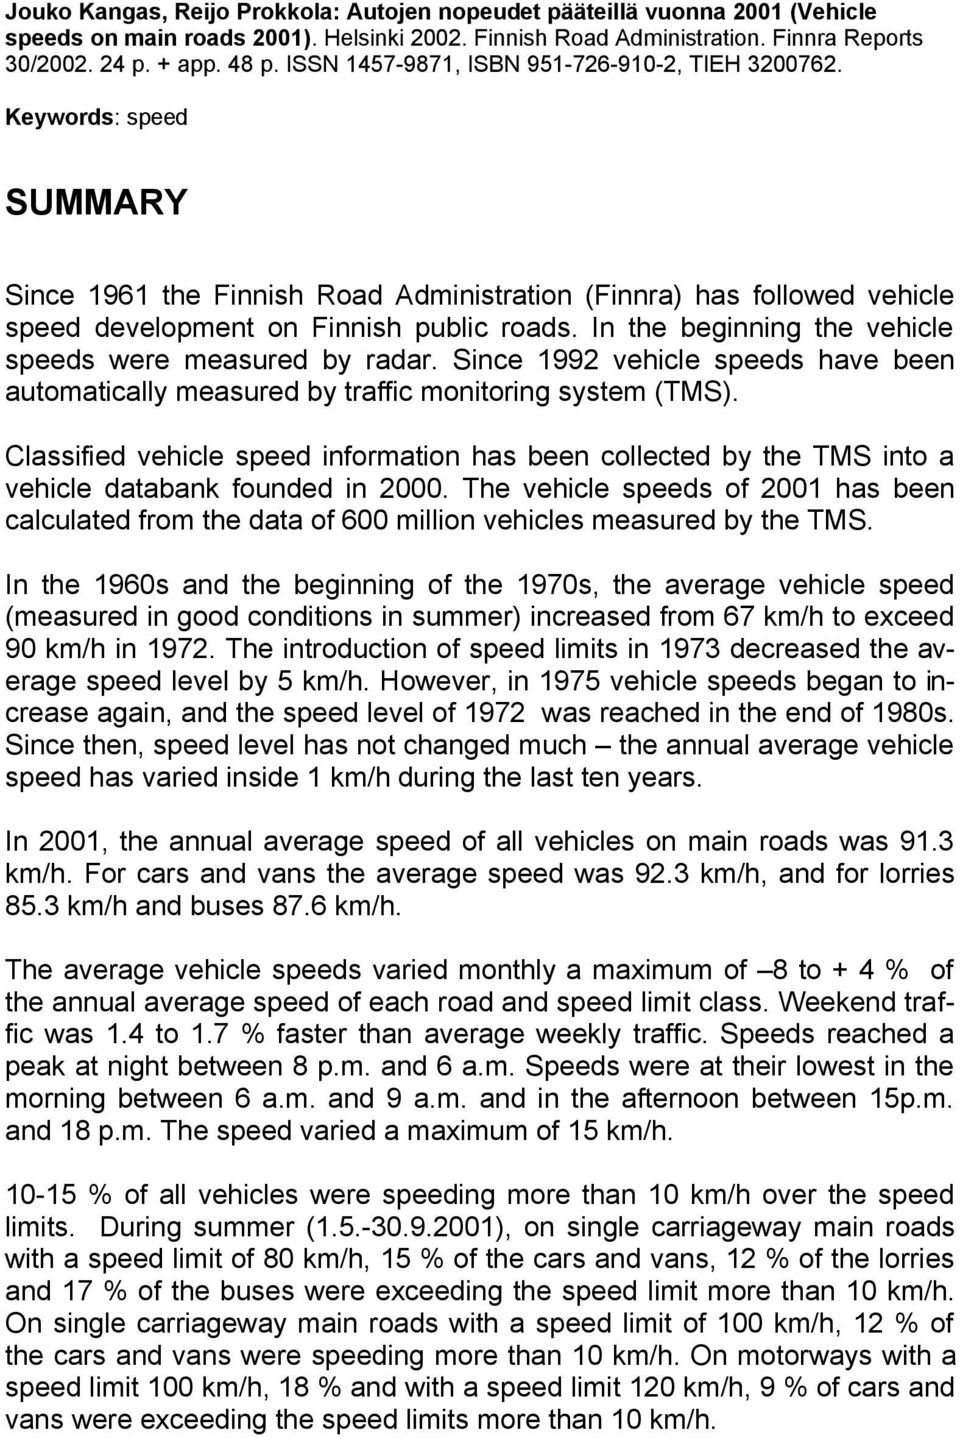 In the beginning the vehicle speeds were measured by radar. Since 1992 vehicle speeds have been automatically measured by traffic monitoring system (TMS).